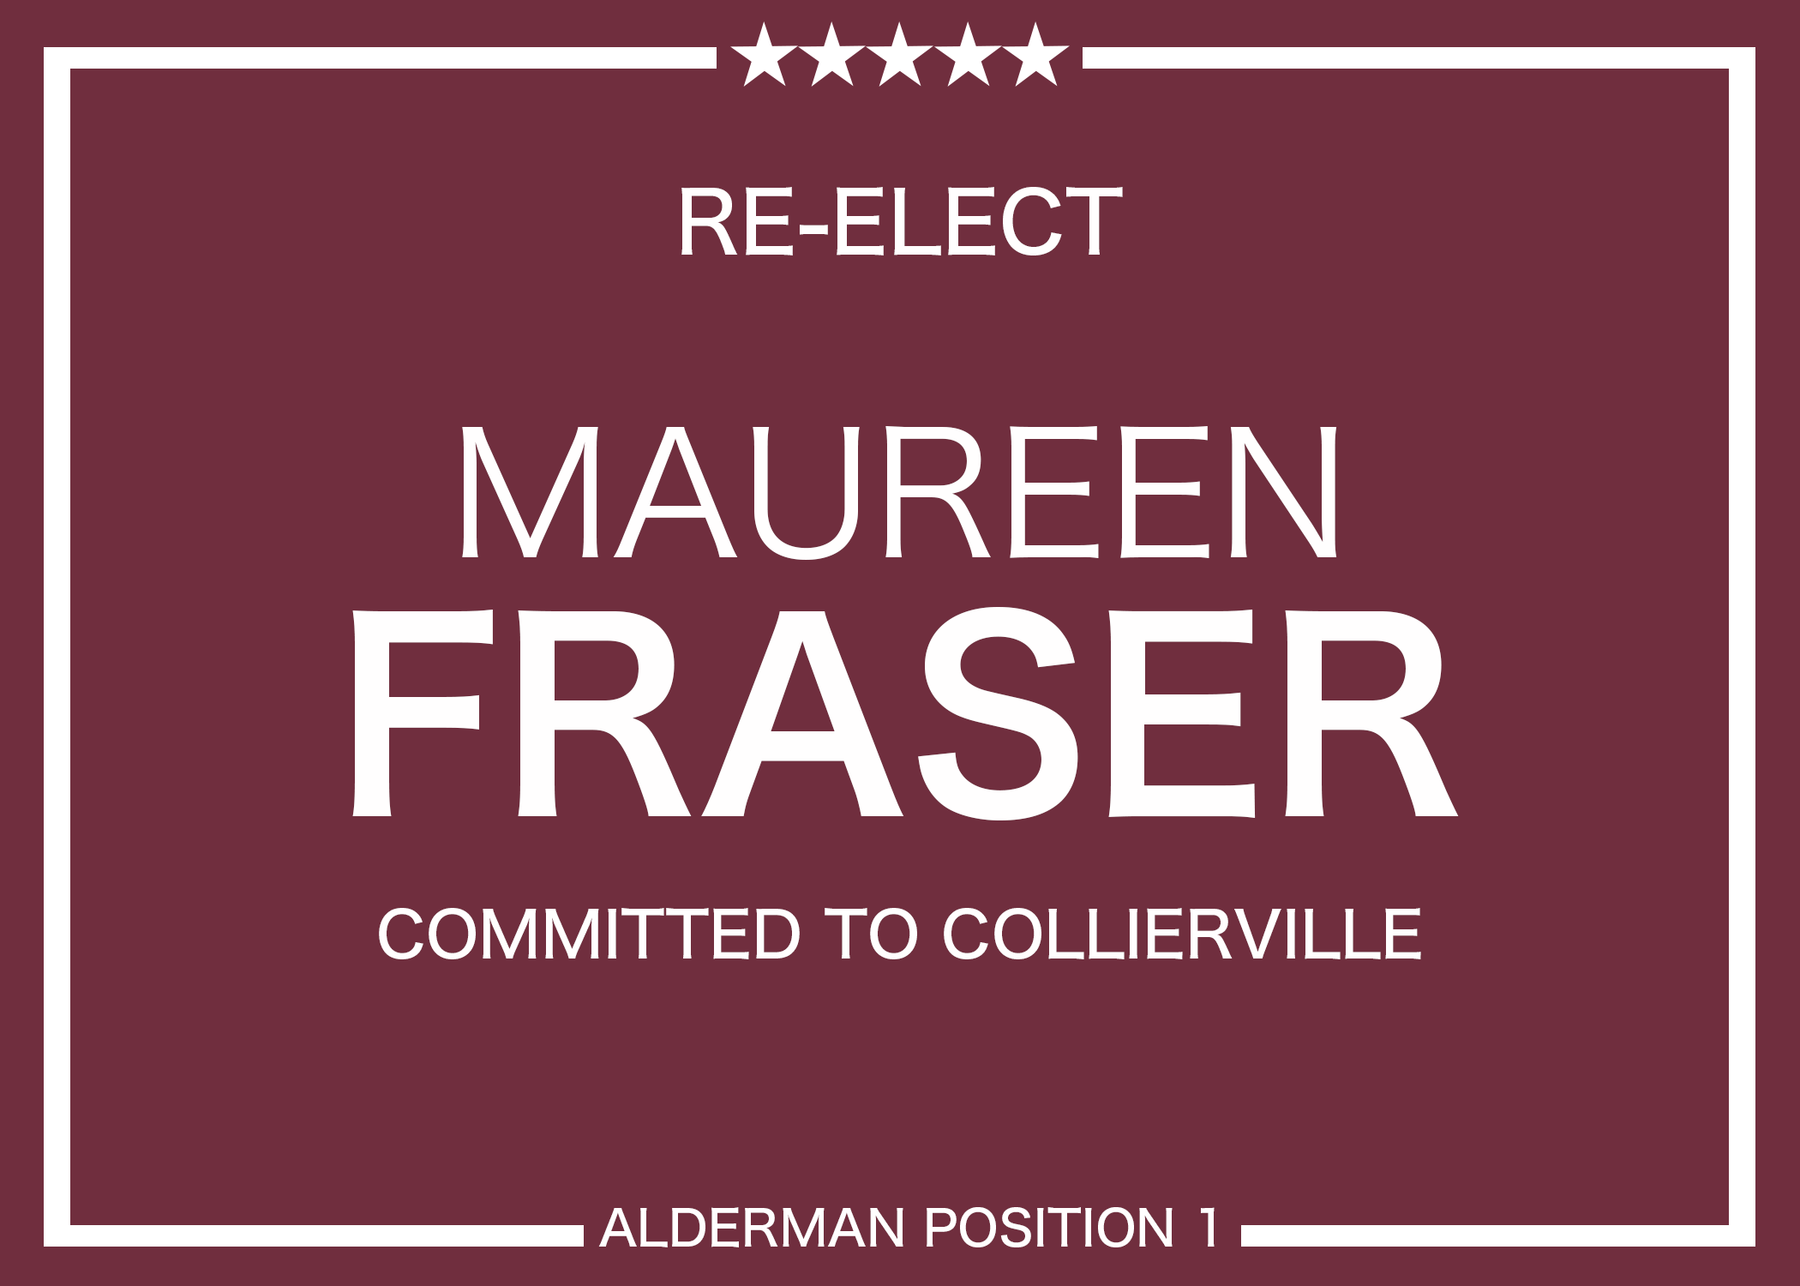 Families to Re-Elect Maureen Fraser: General Fund